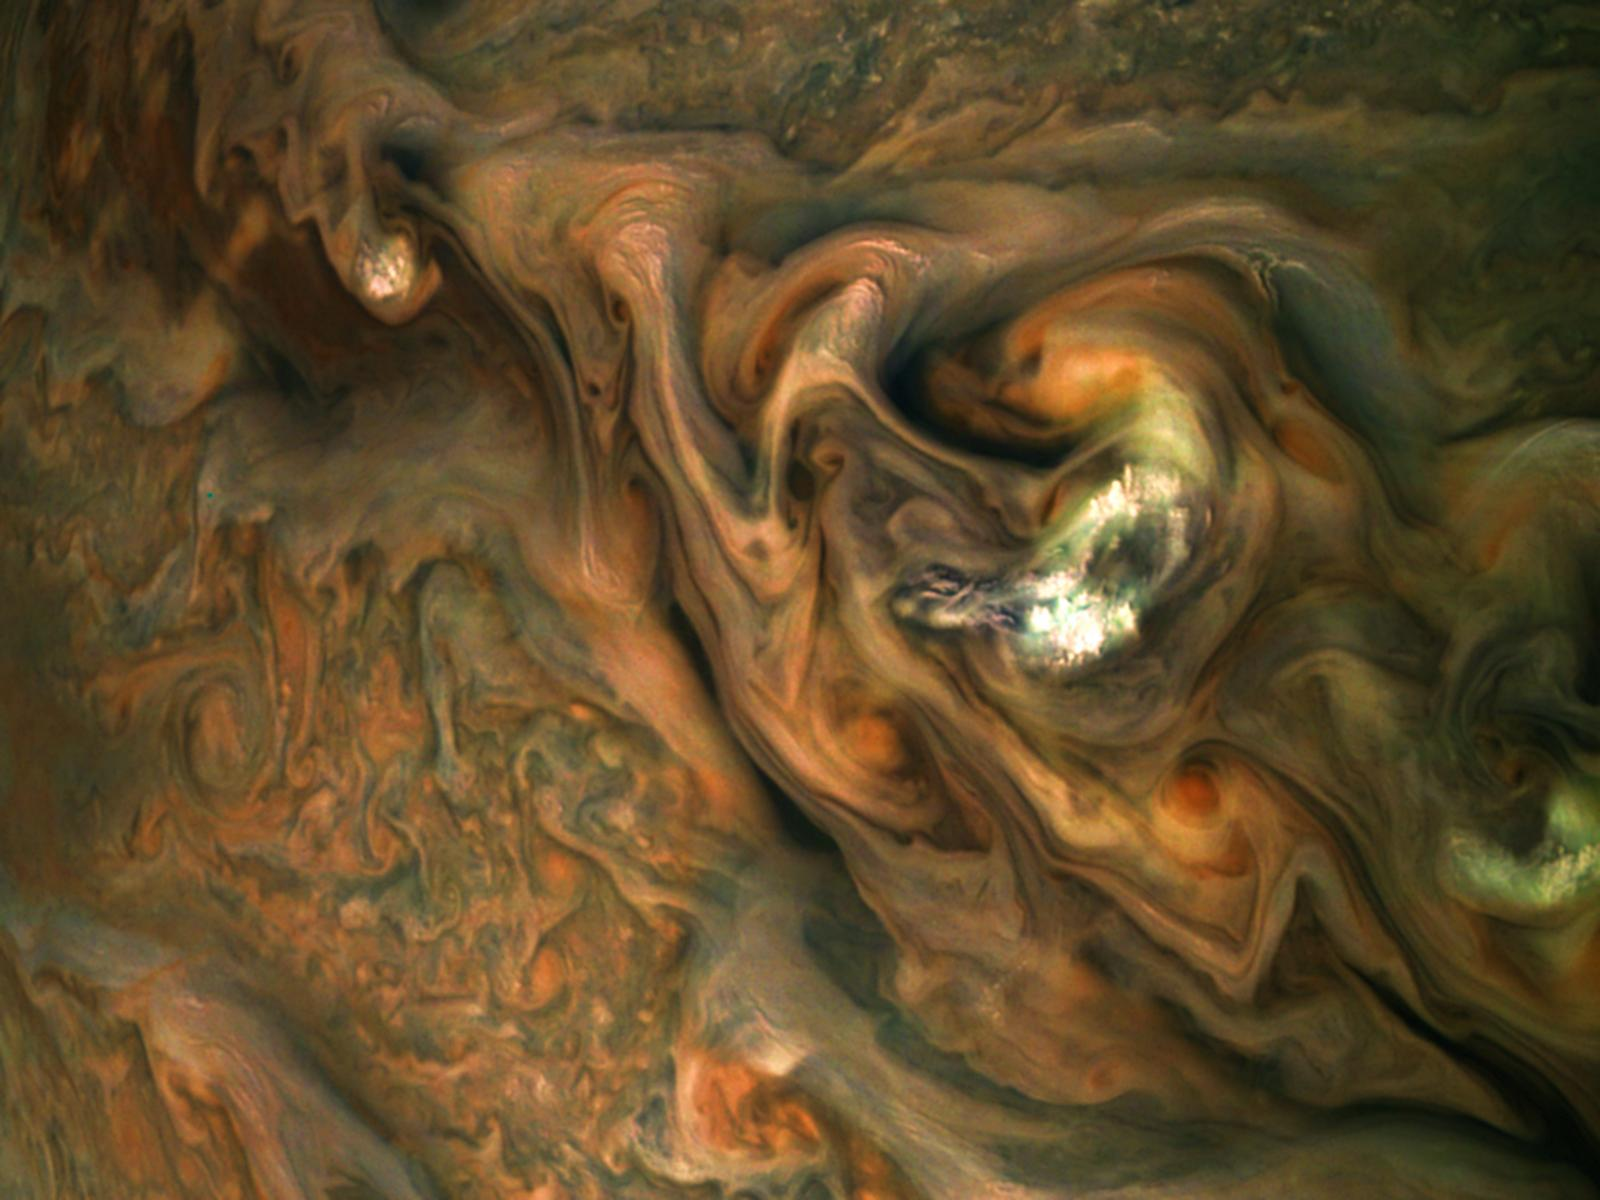 This view from NASAs Juno spacecraft captures colorful, intricate patterns in a jet stream region of Jupiters northern hemisphere known as Jet N3.